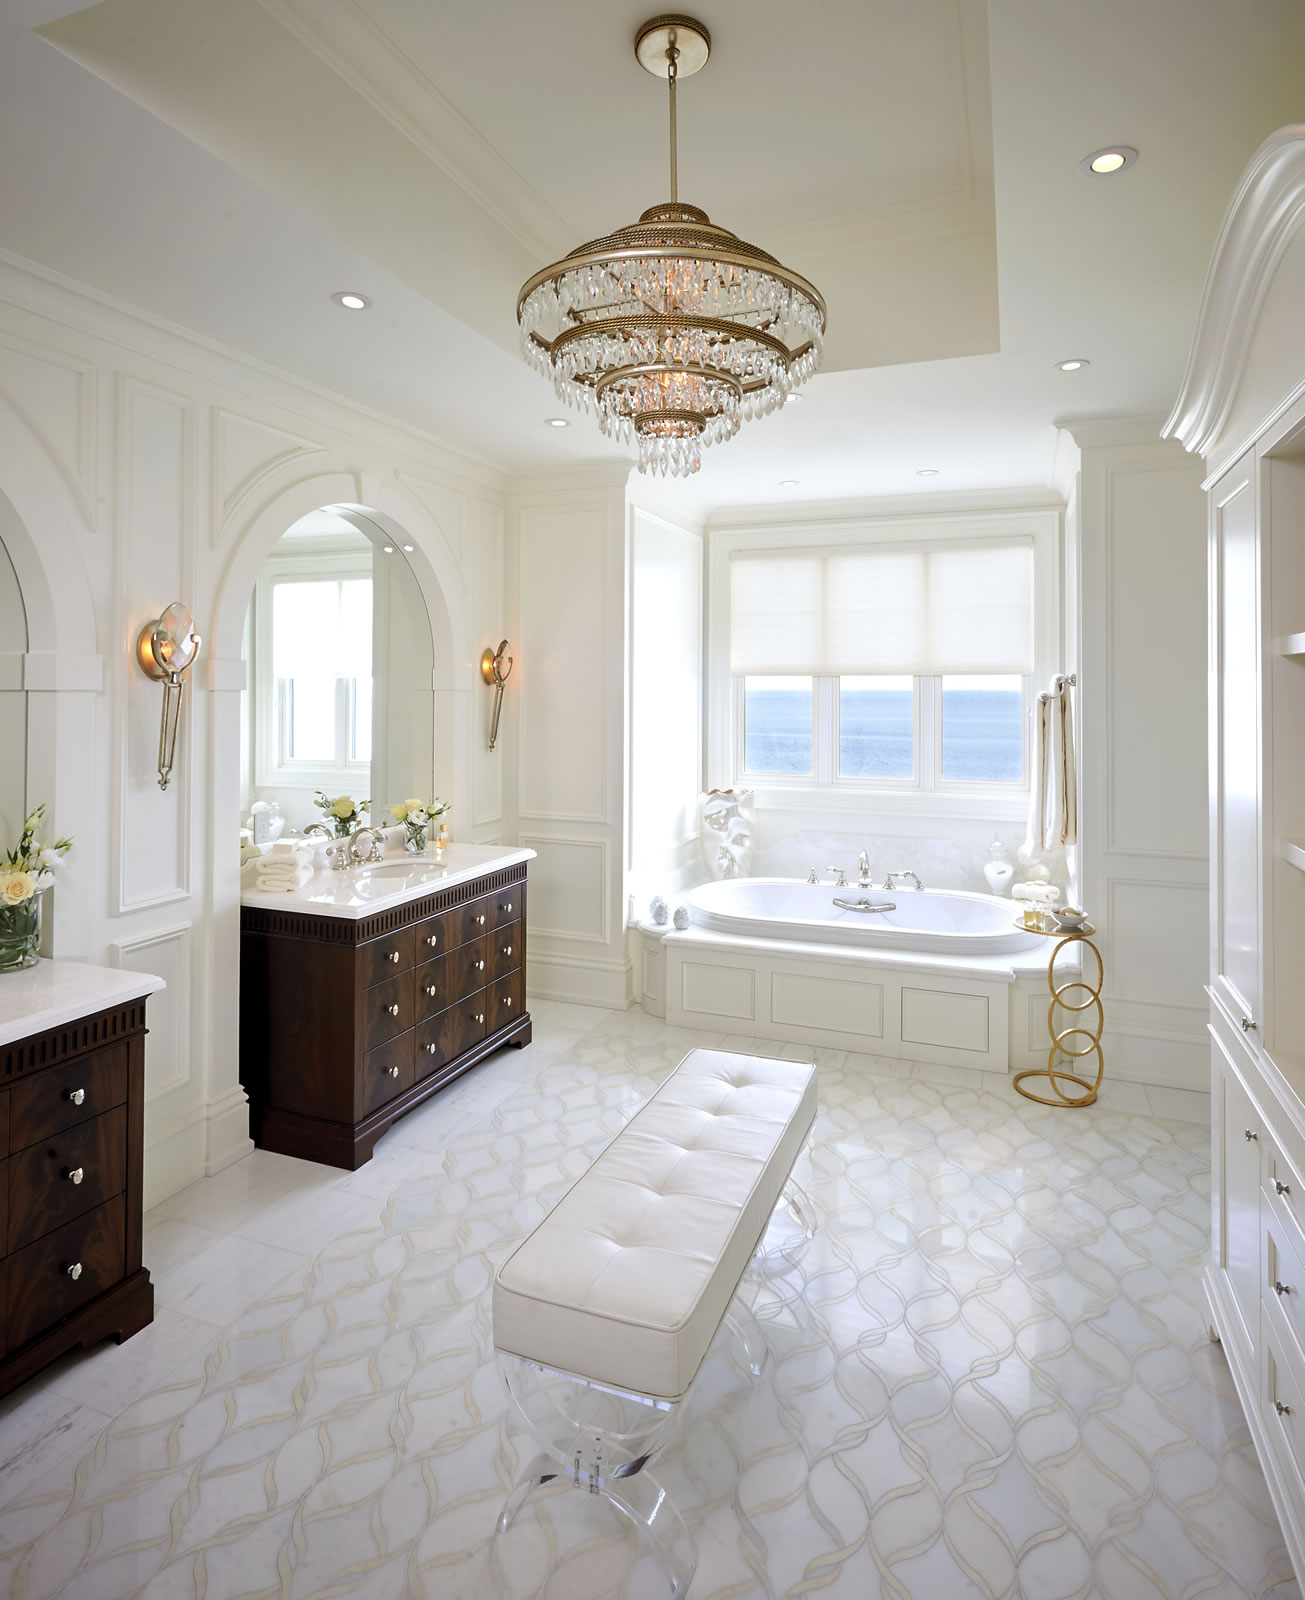 Burlington interior design project chateauesque jewel for Interior designs regina